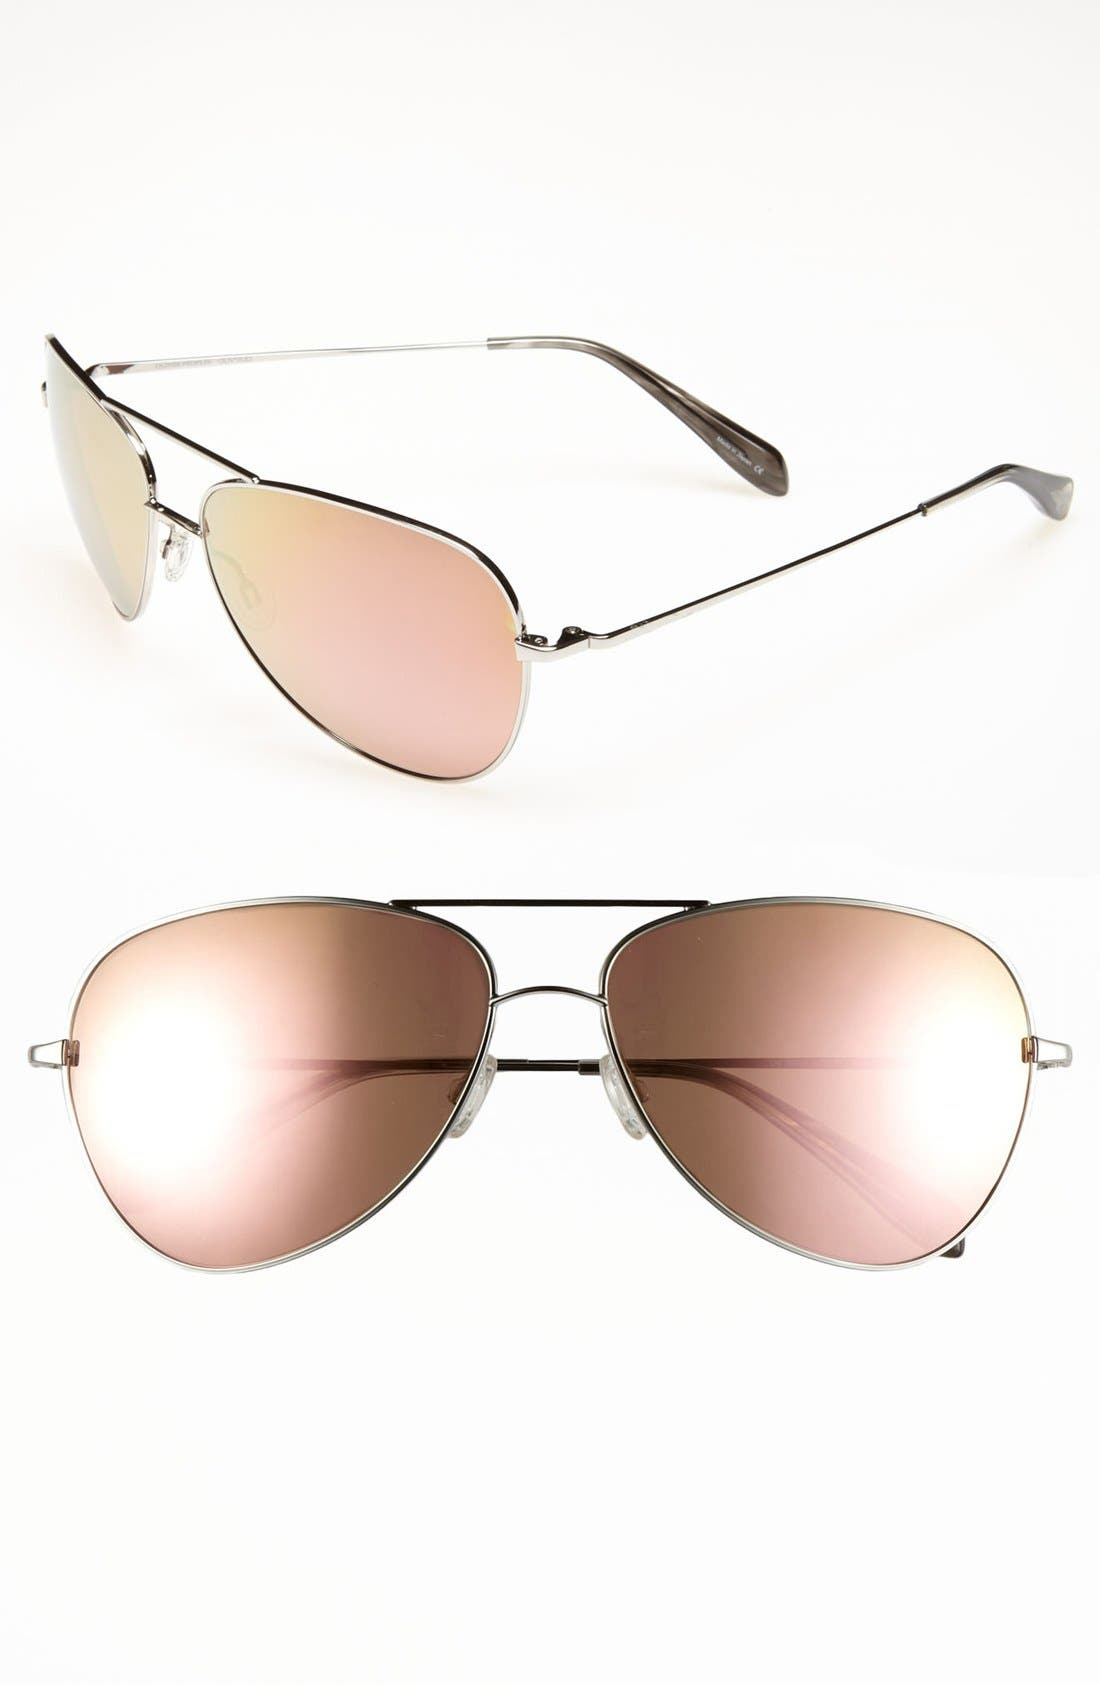 Main Image - Oliver Peoples Aviator Sunglasses (Online Exclusive)